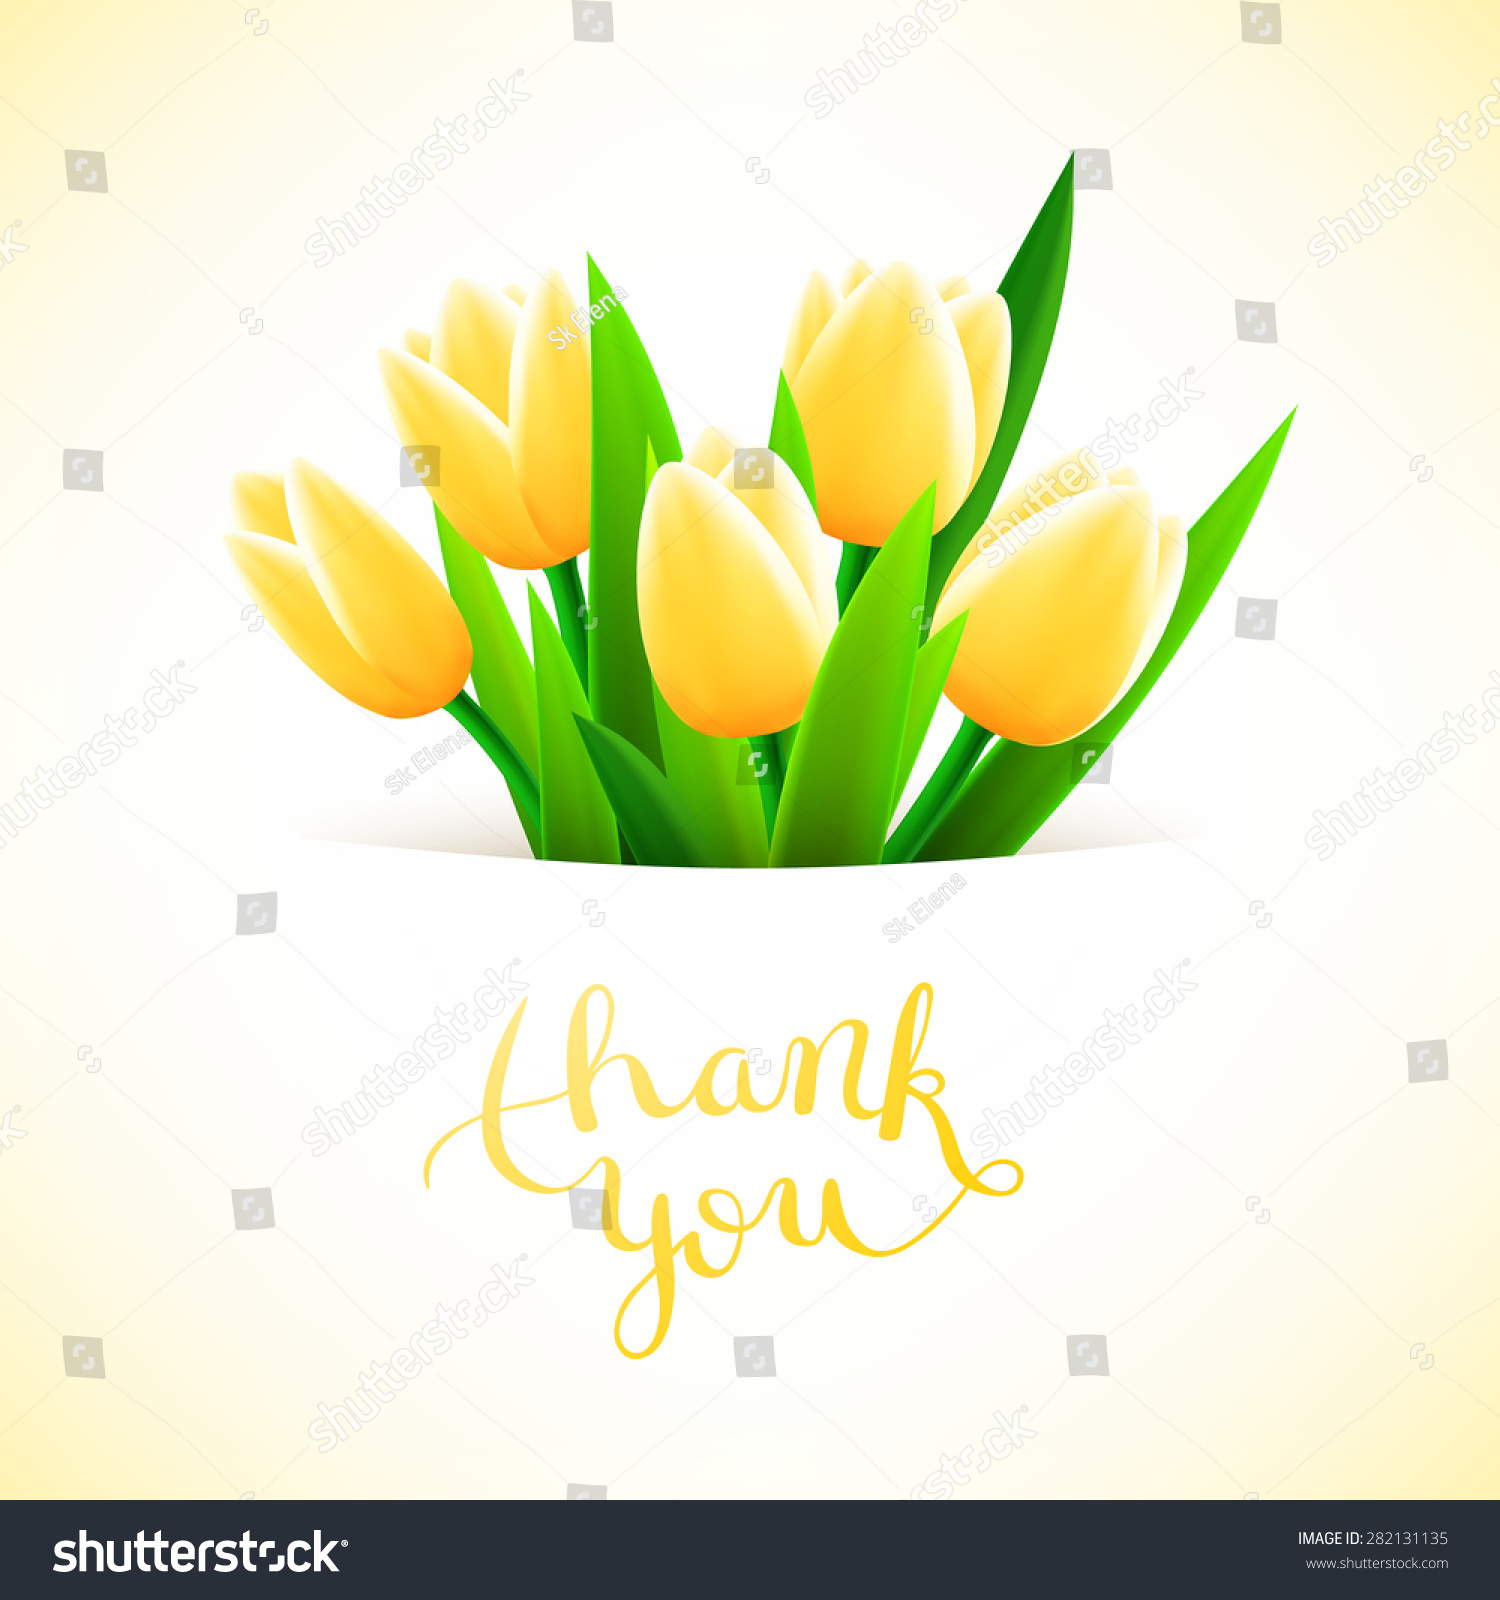 Beautiful Flower Thank You: Thank You Tulip Flowers Beautiful Card Stock Vector